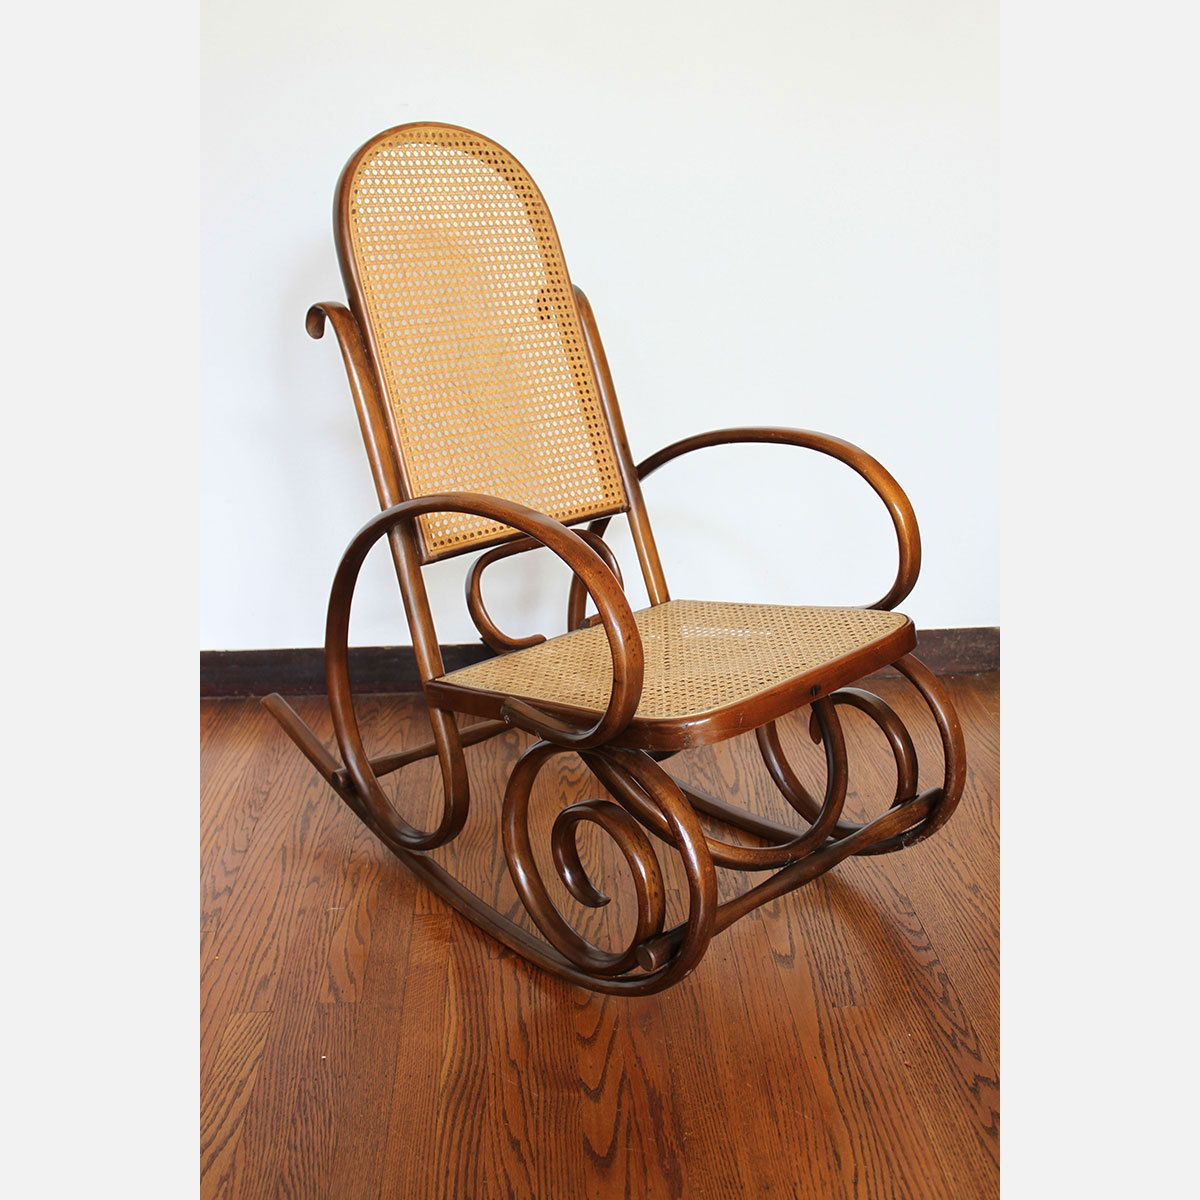 New Rocking Chair with Stool